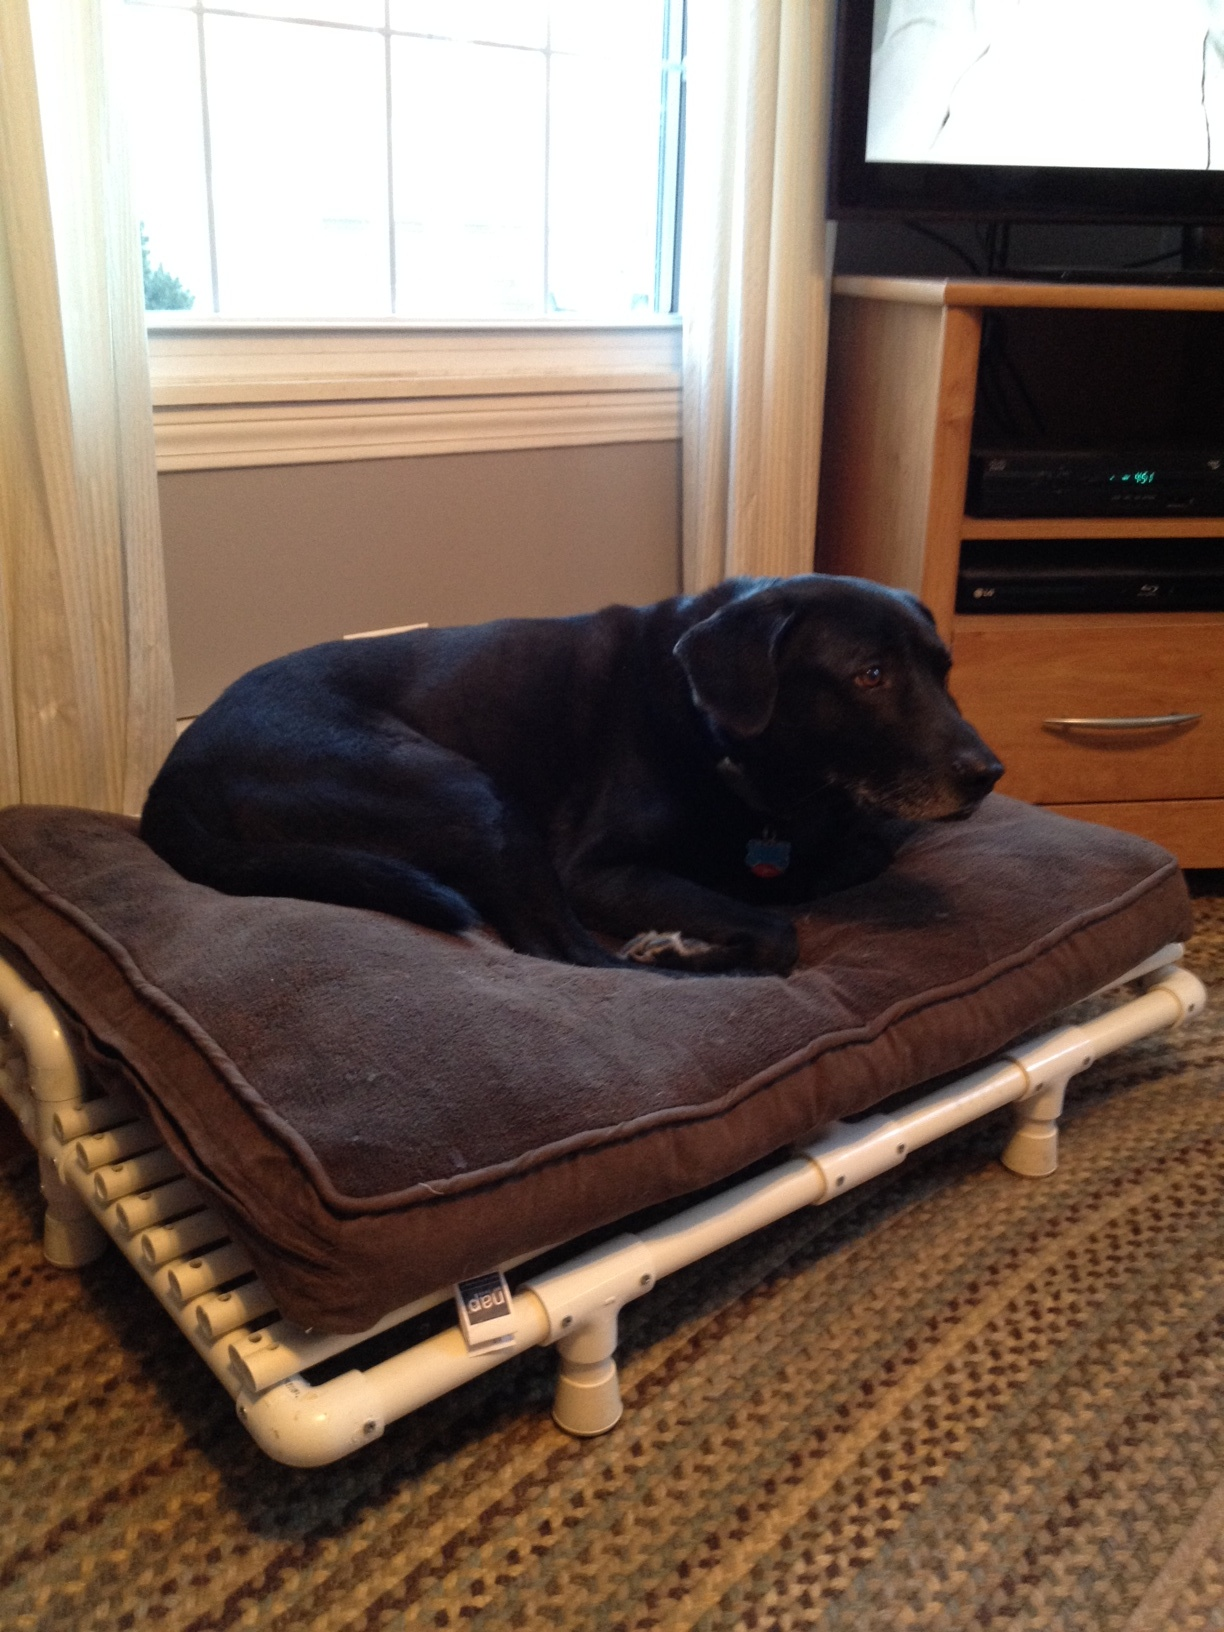 pictures of a build it yourself pvc raised dog bed. Black Bedroom Furniture Sets. Home Design Ideas